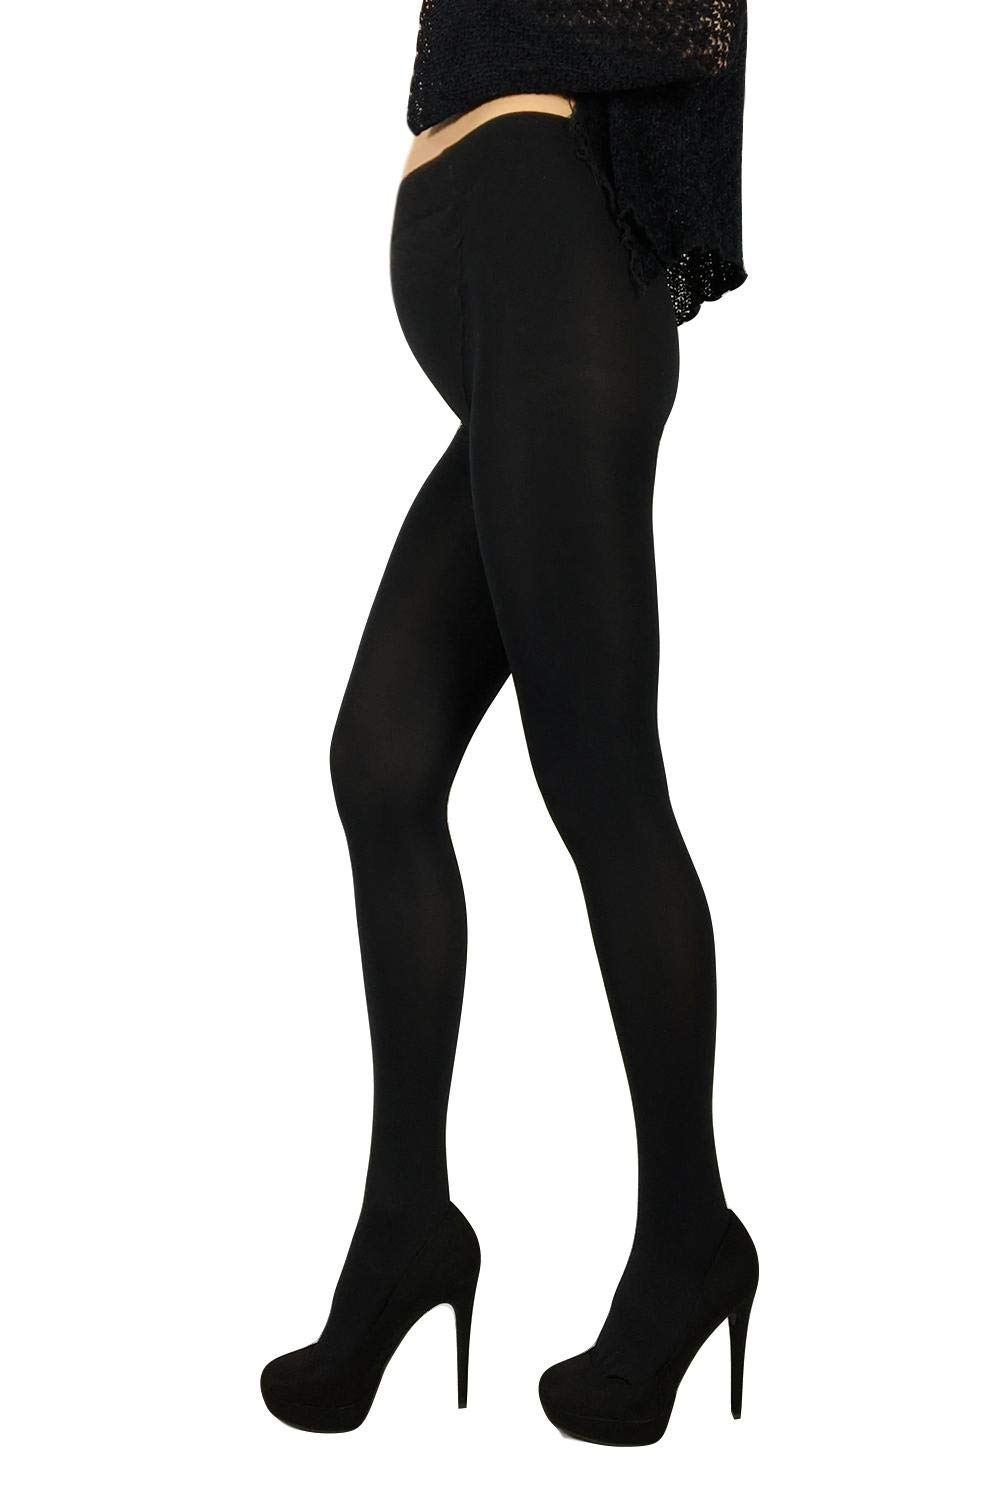 286ea9dfabd5a Tights & Hosiery : Online Shopping for Clothing, Shoes, Jewelry, Pet ...